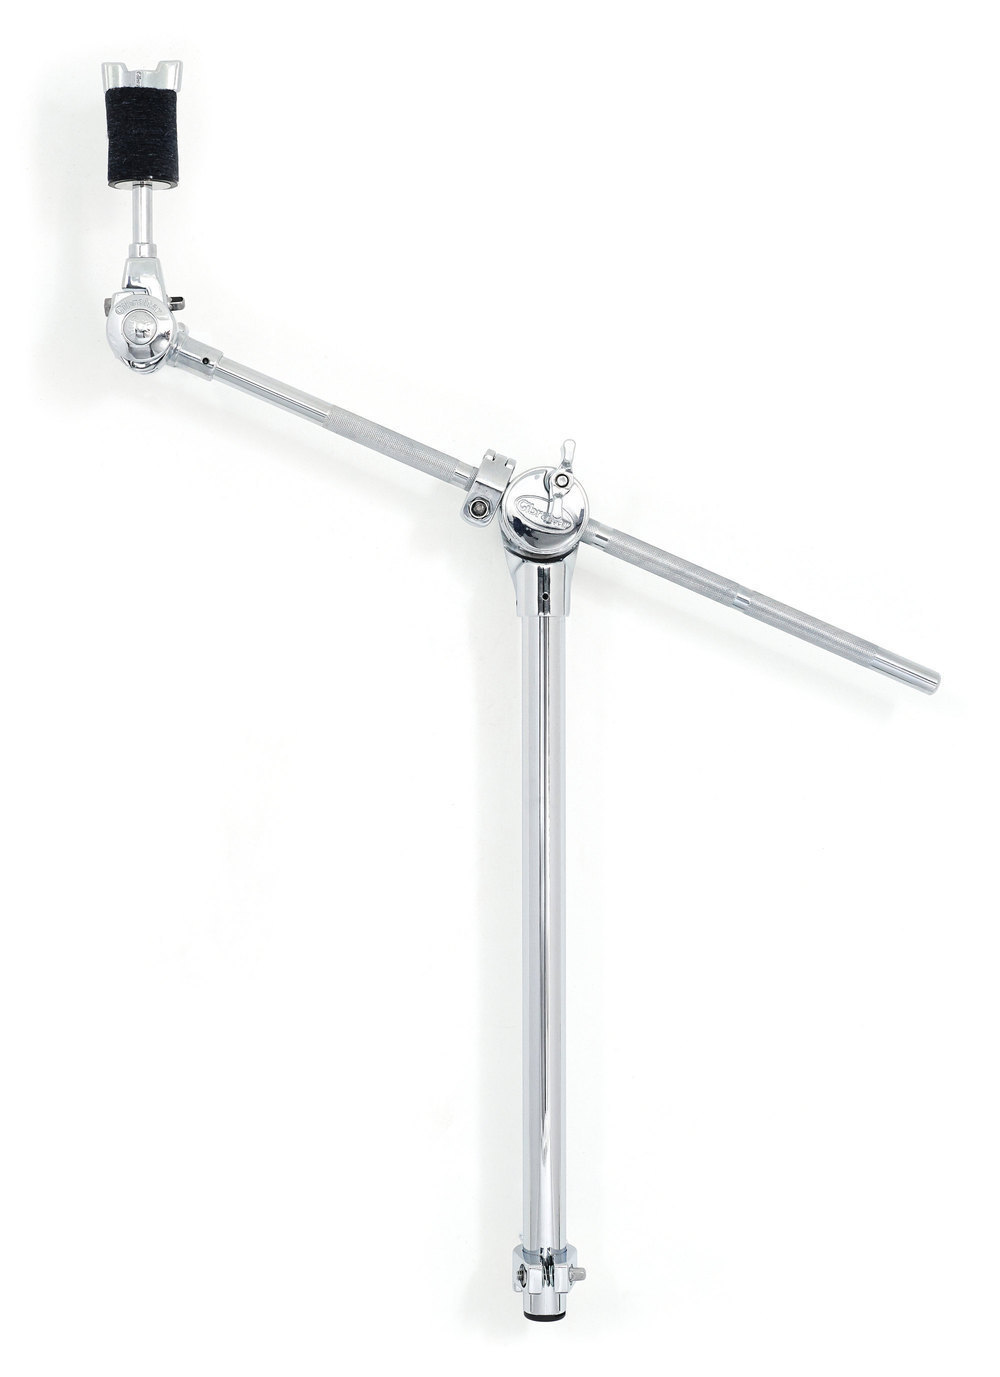 Image of   Gibraltar SC-LBBT Cymbal arm/accessory Long cymbal boom arm